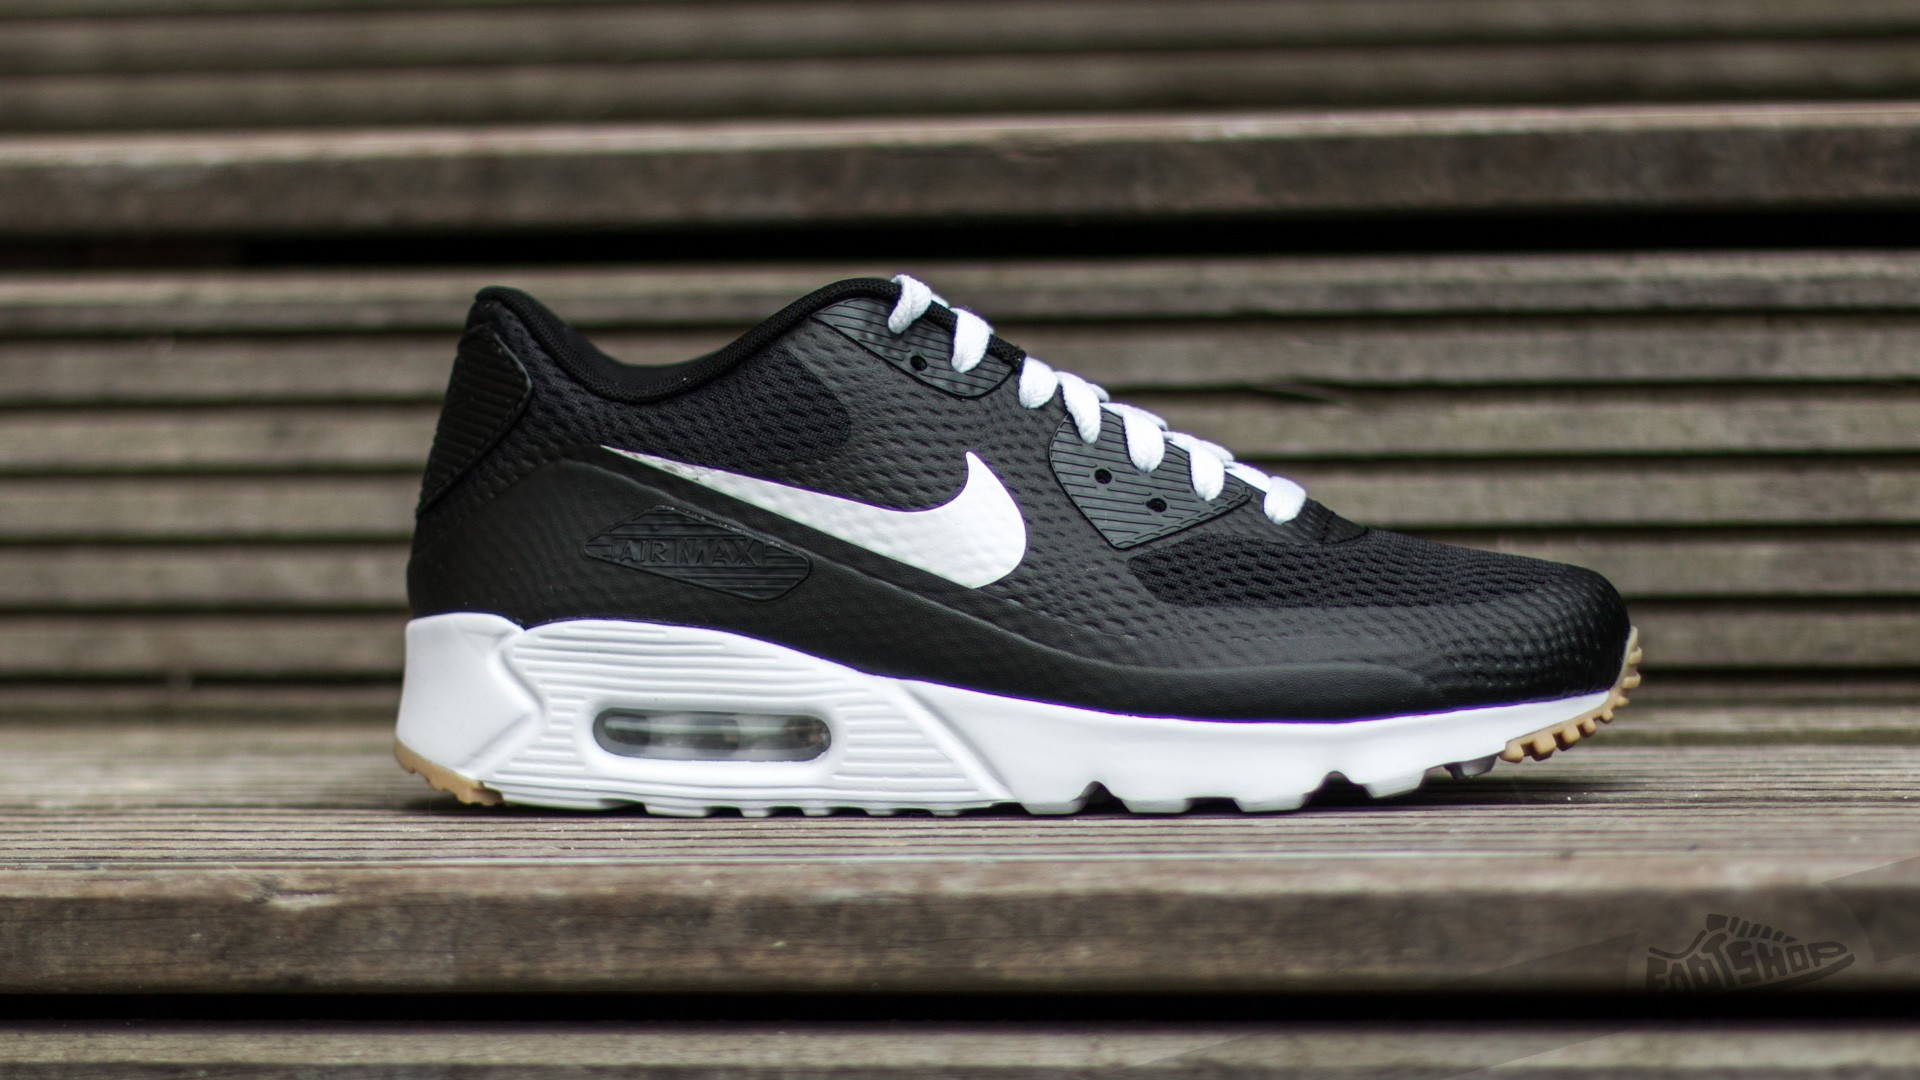 new concept 9e25a 5bf30 Nike Air Max 90 Ultra Essential Black/ White-Black | Footshop